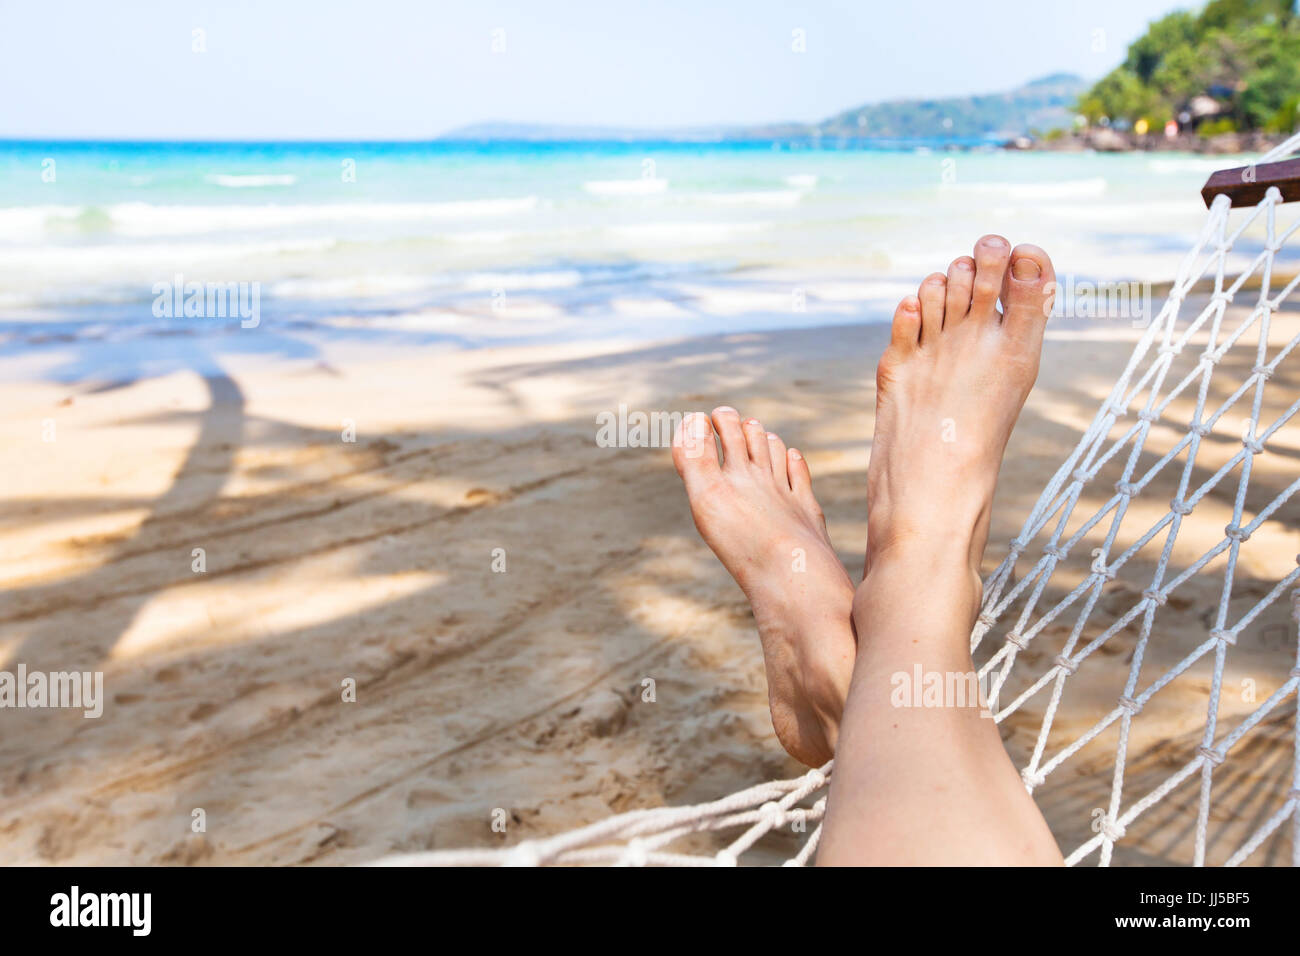 beach holidays background, vacation and relaxation concept, feet of person in hammock - Stock Image